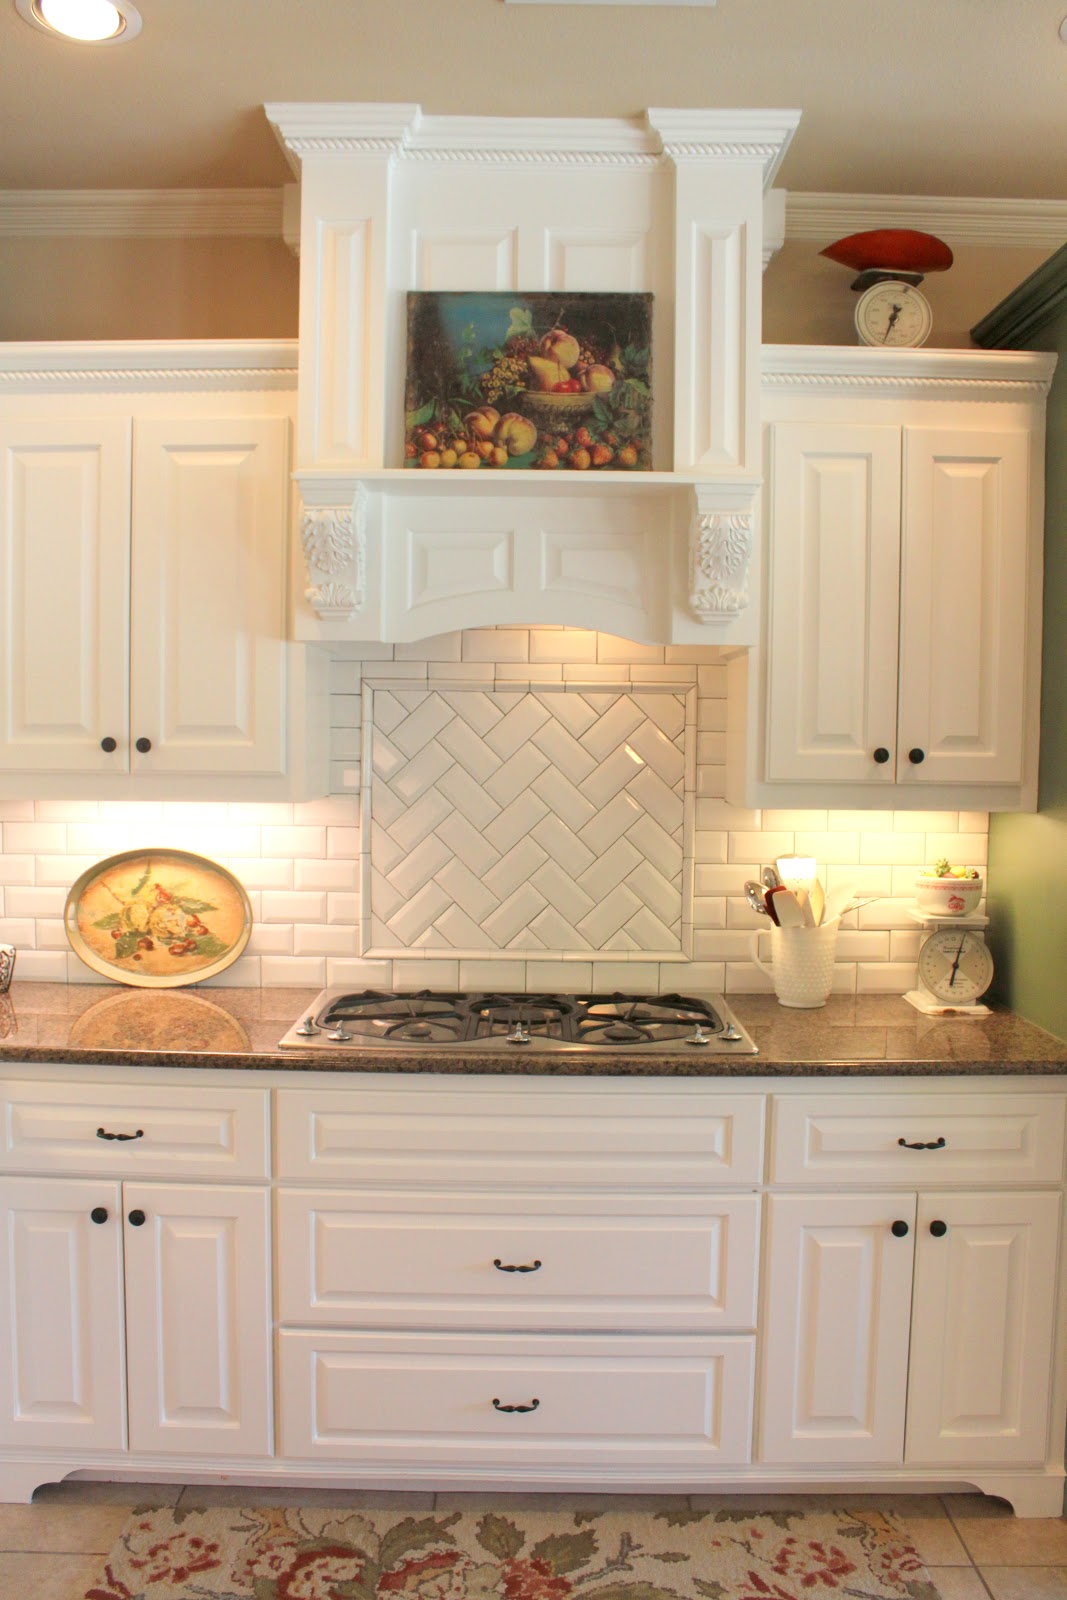 It 39 s a wannabe decorator 39 s life kitchen reveal finally for White subway tile kitchen designs